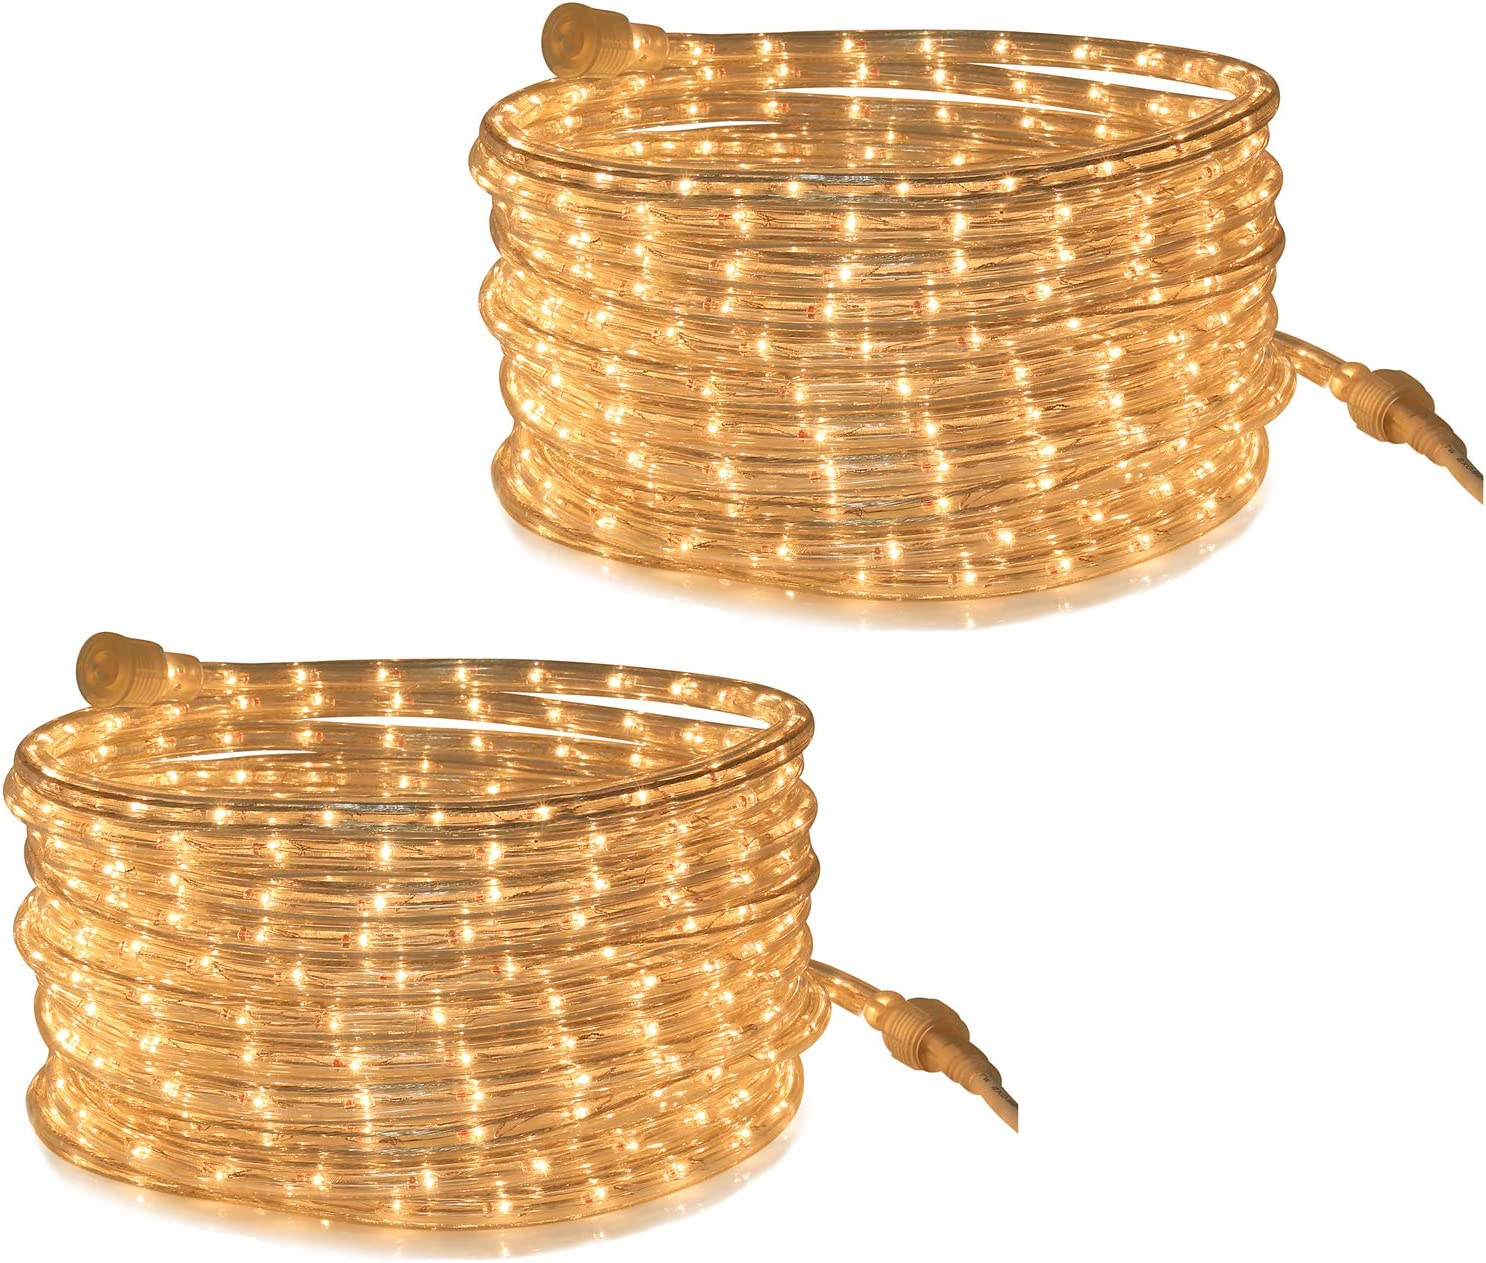 Tupkee Rope Light Warm Clear - 24 Feet (7.3 m), for Indoor and Outdoor use - 10MM Diameter - 288 Clear Incandescent Long Life Bulbs Rope Tube Lights - Pack of 2